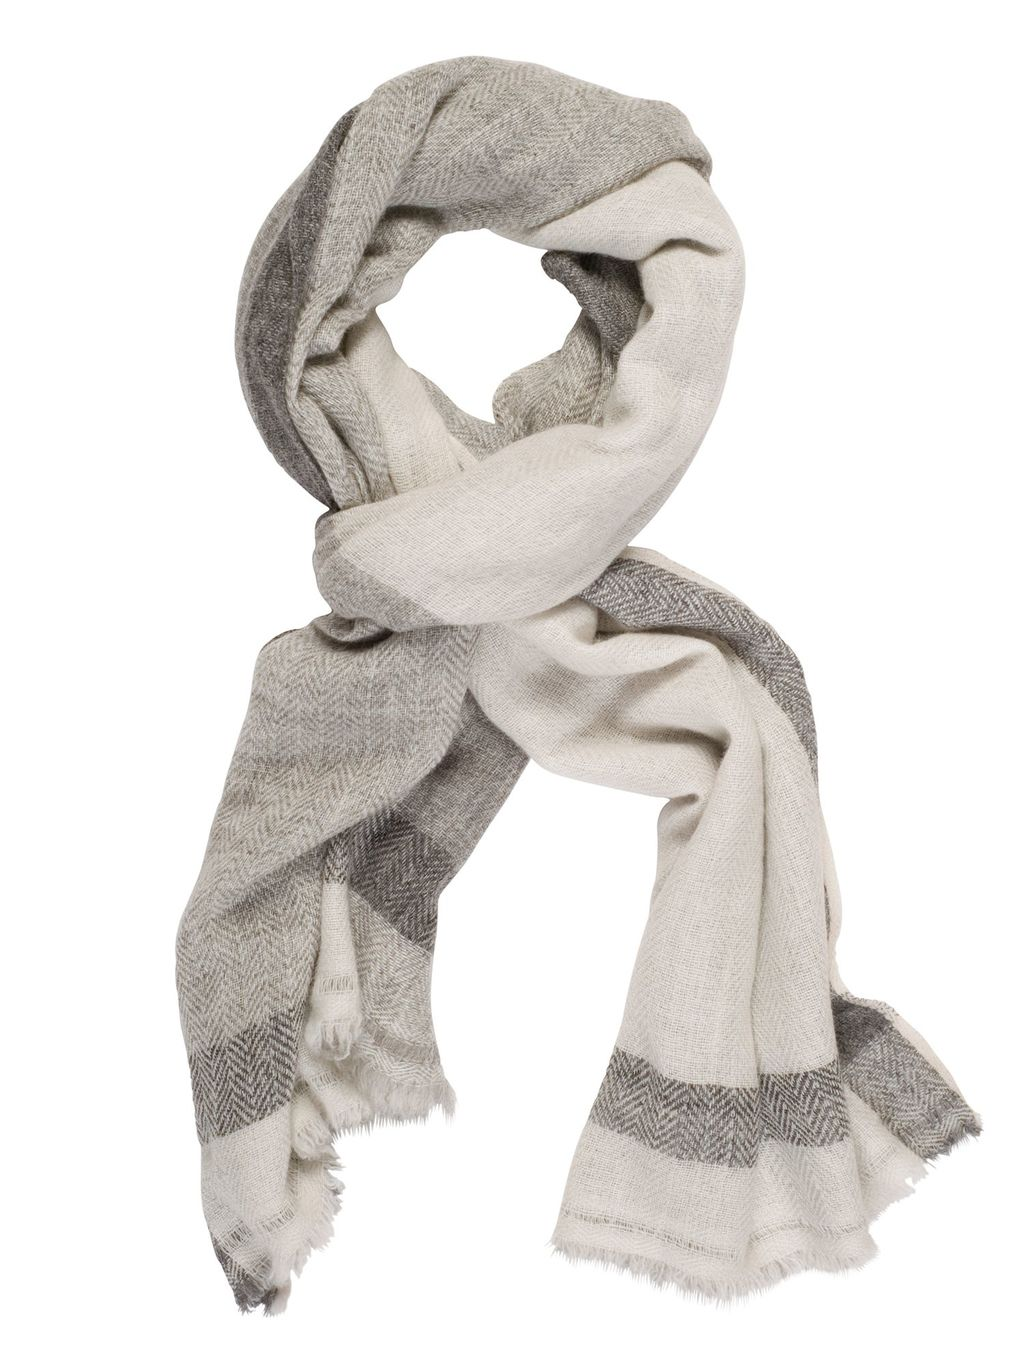 Striped Cashmere Scarf, Ivory - predominant colour: light grey; occasions: casual; type of pattern: standard; style: regular; size: standard; material: fabric; pattern: patterned/print; season: s/s 2016; wardrobe: highlight